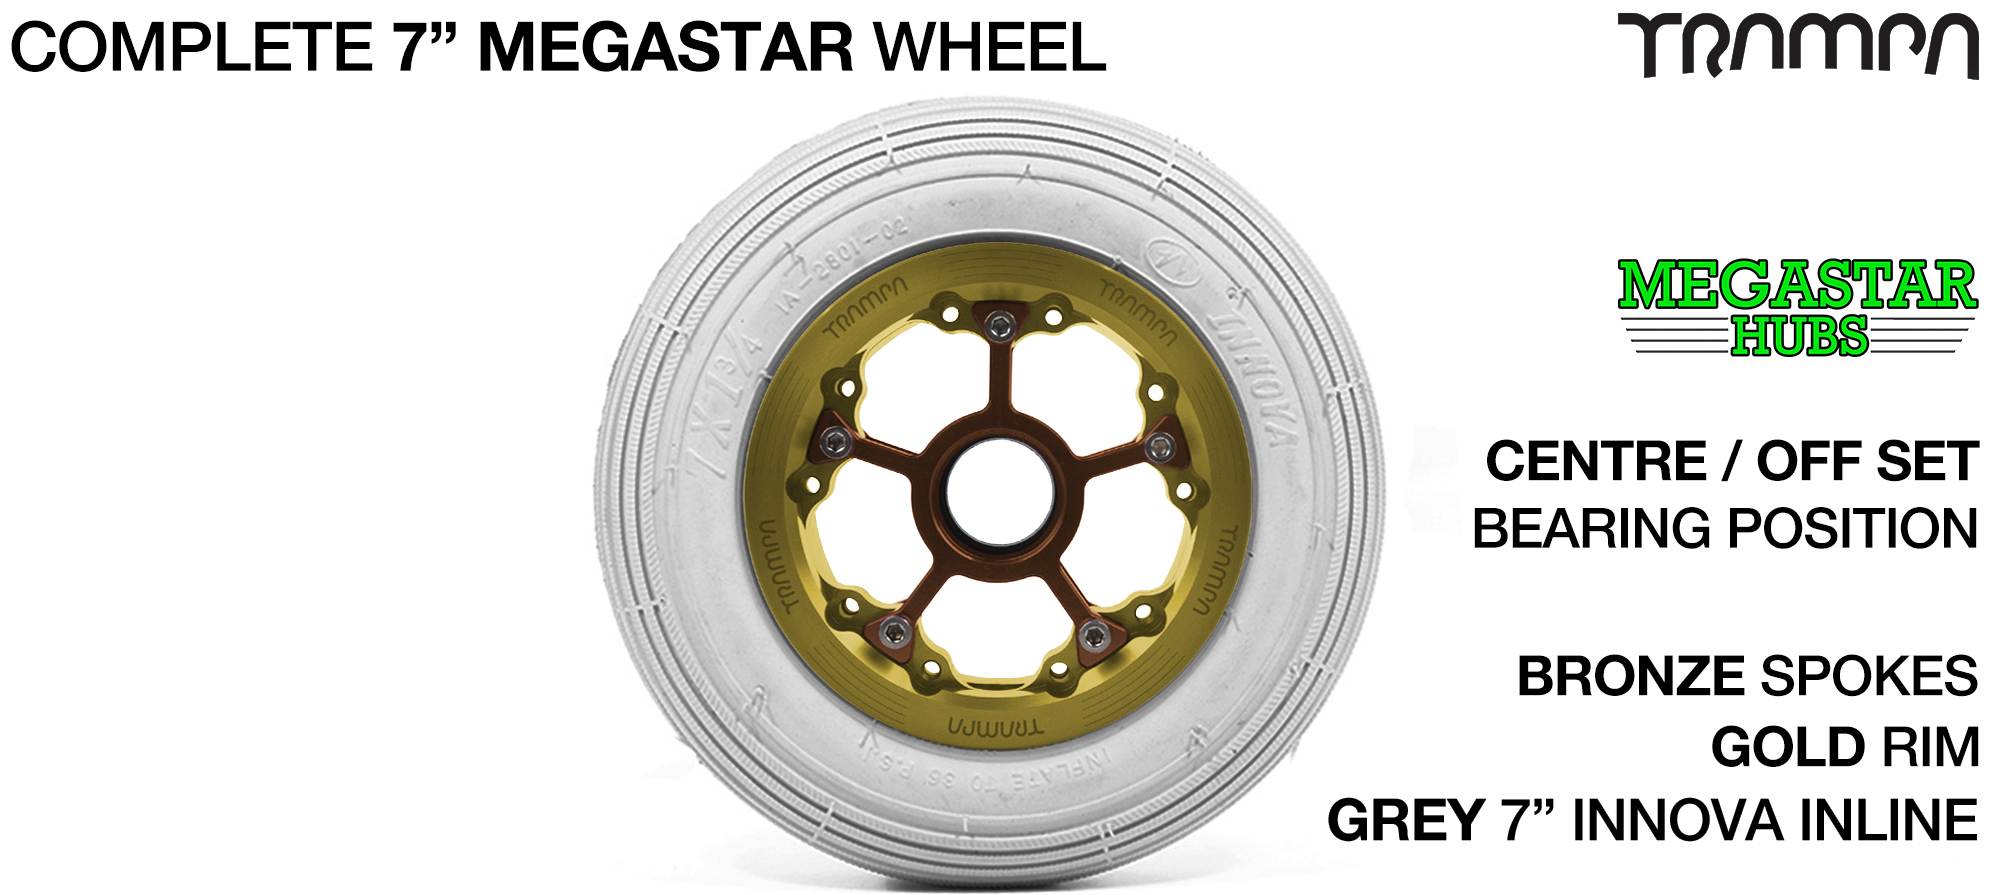 GOLD MEGASTAR Rims with BRONZE Spokes & 7 Inch Tyres